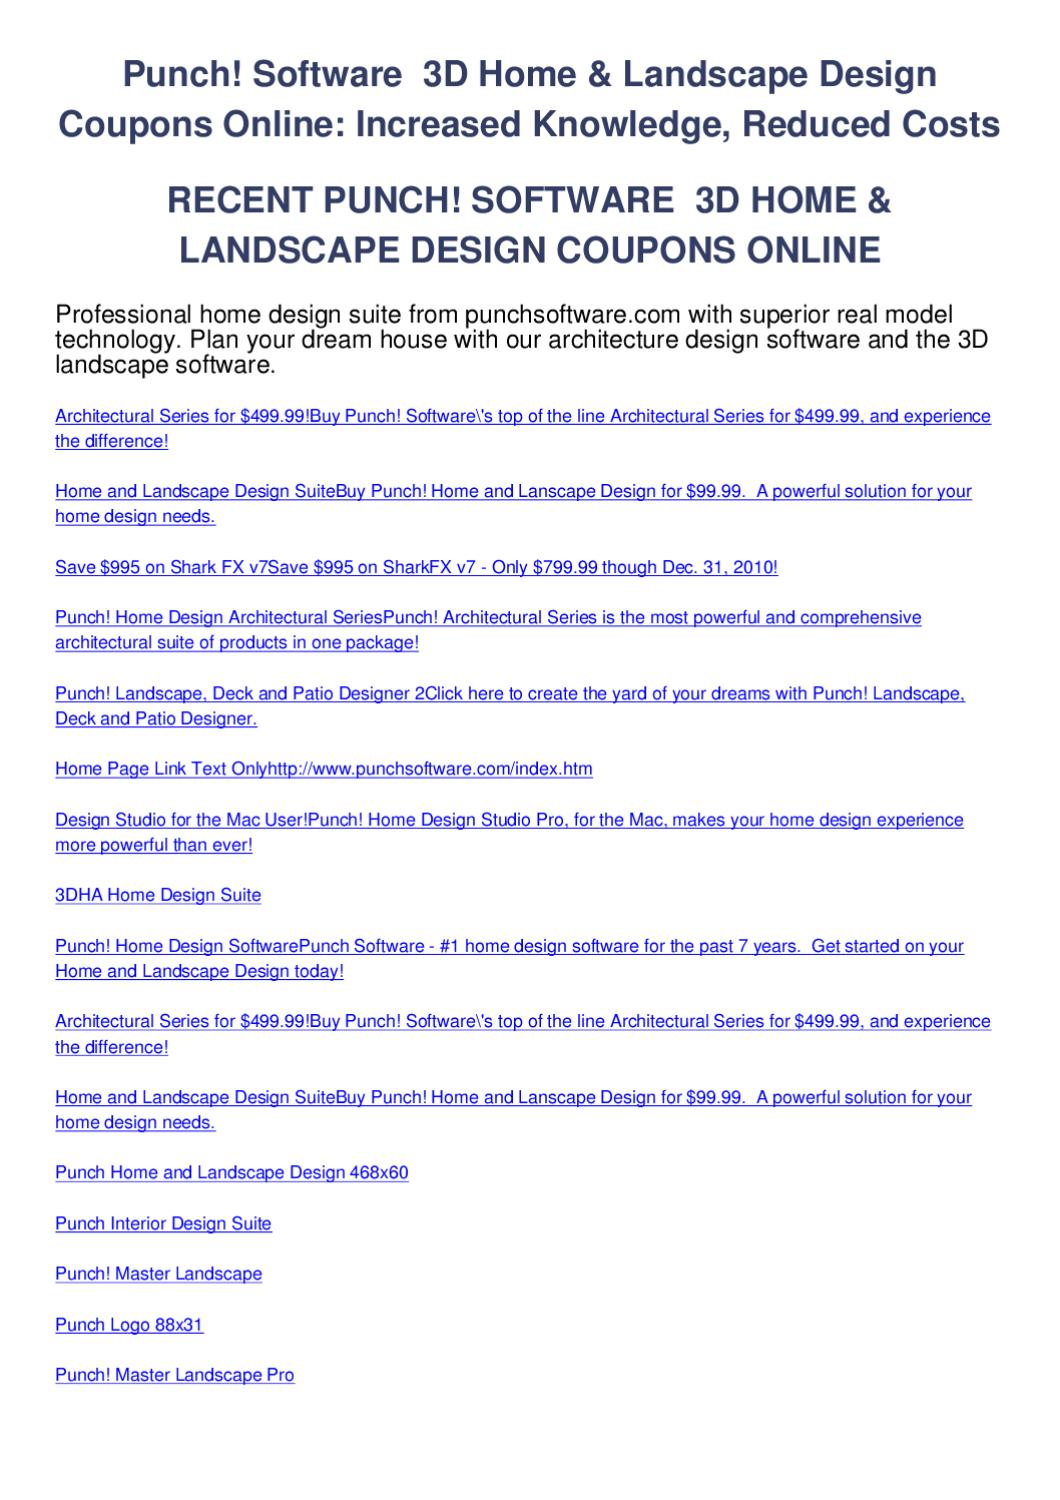 Punch software 3d home landscape design coupons online by - Punch home design architectural series ...